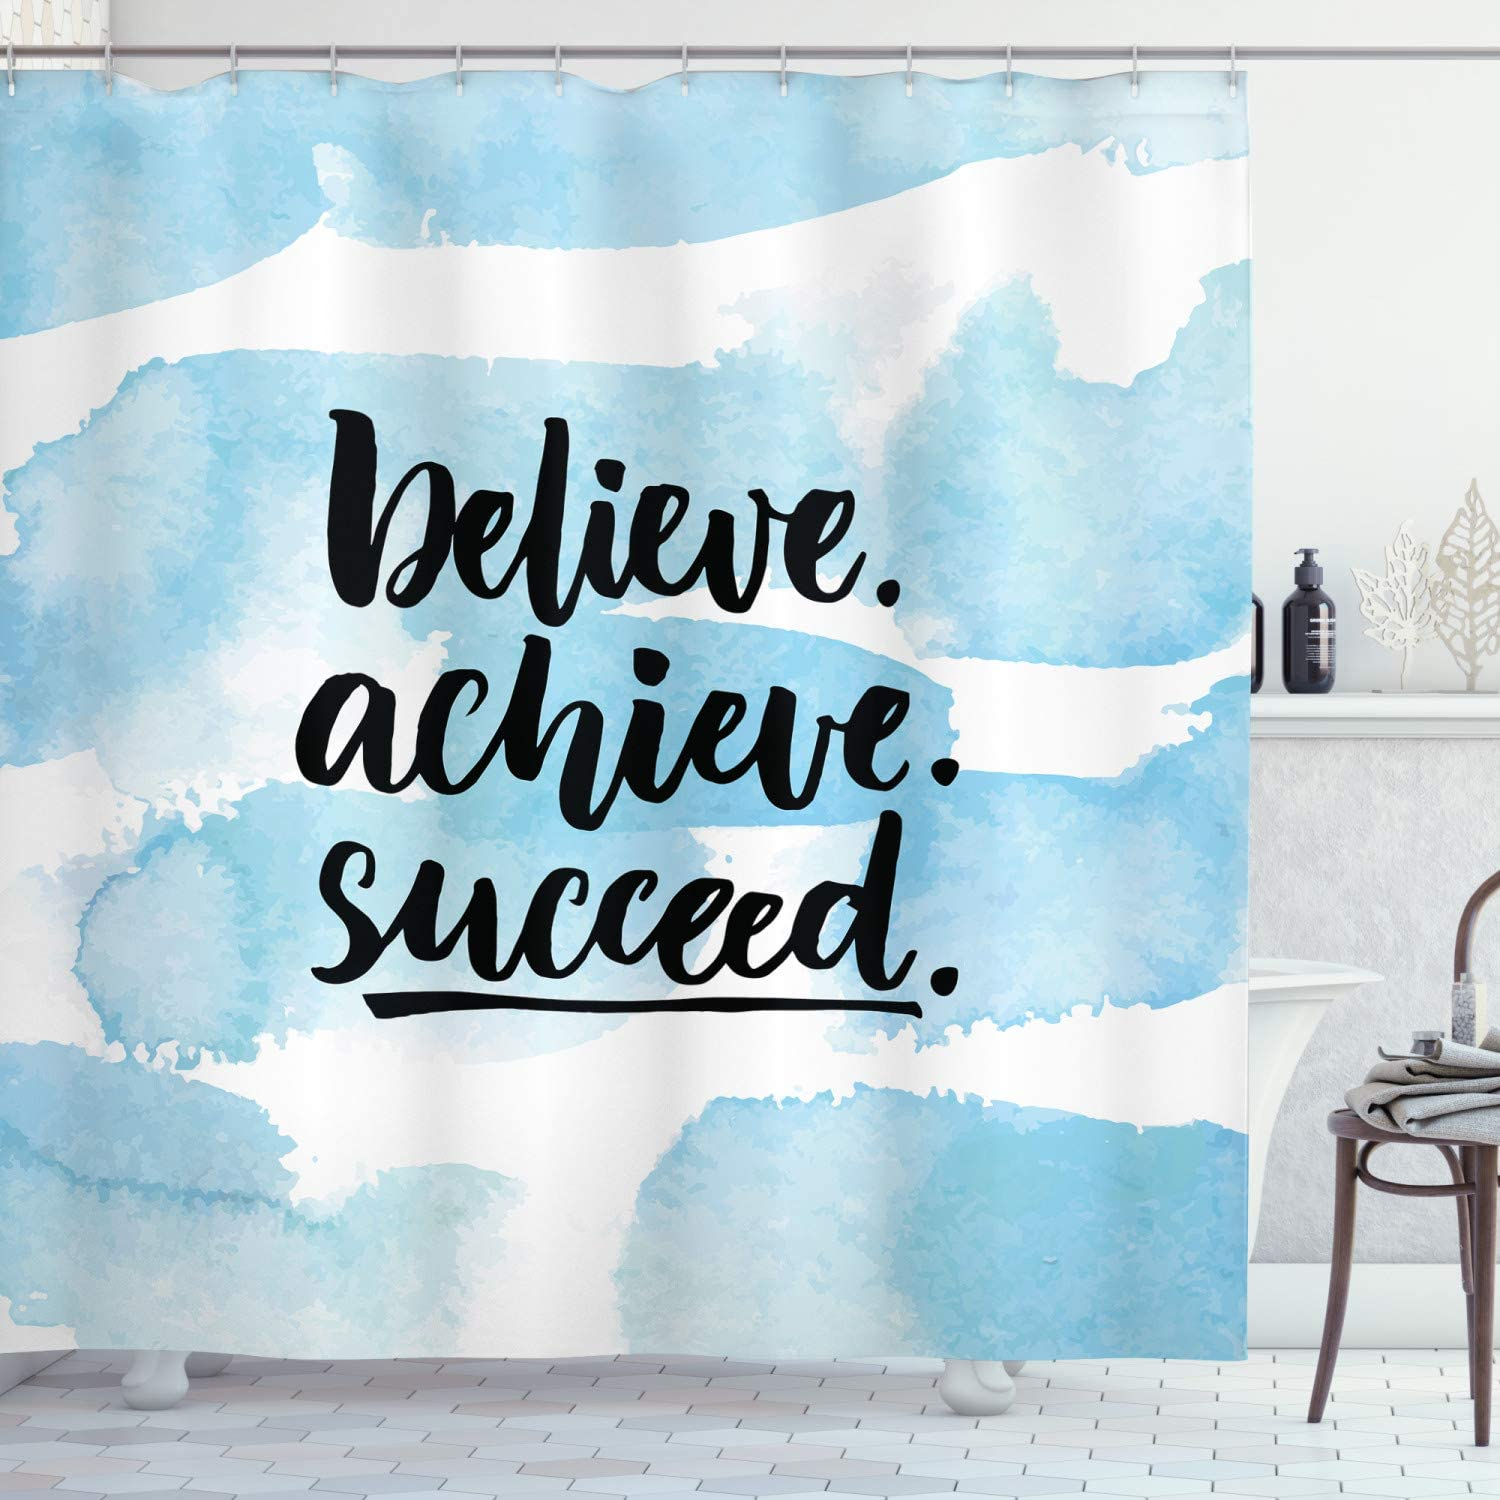 Ambesonne Inspirational Saying Shower Believe Curtain Sales Year-end annual account Achieve S